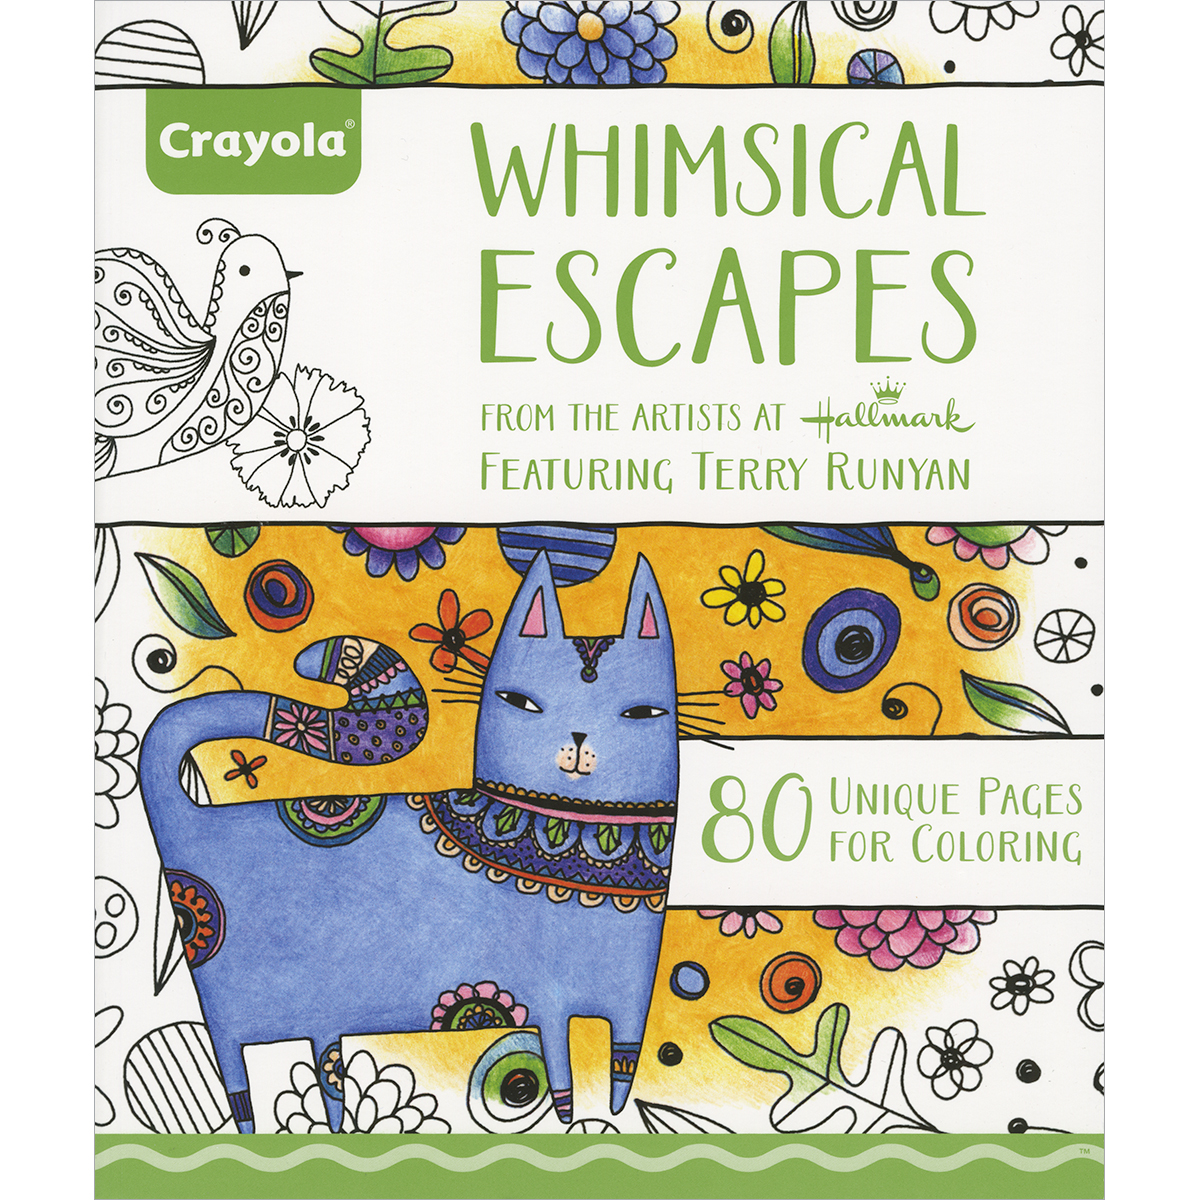 Crayola 80 Page Adult Coloring Book Whimsical Escapes by Crayola